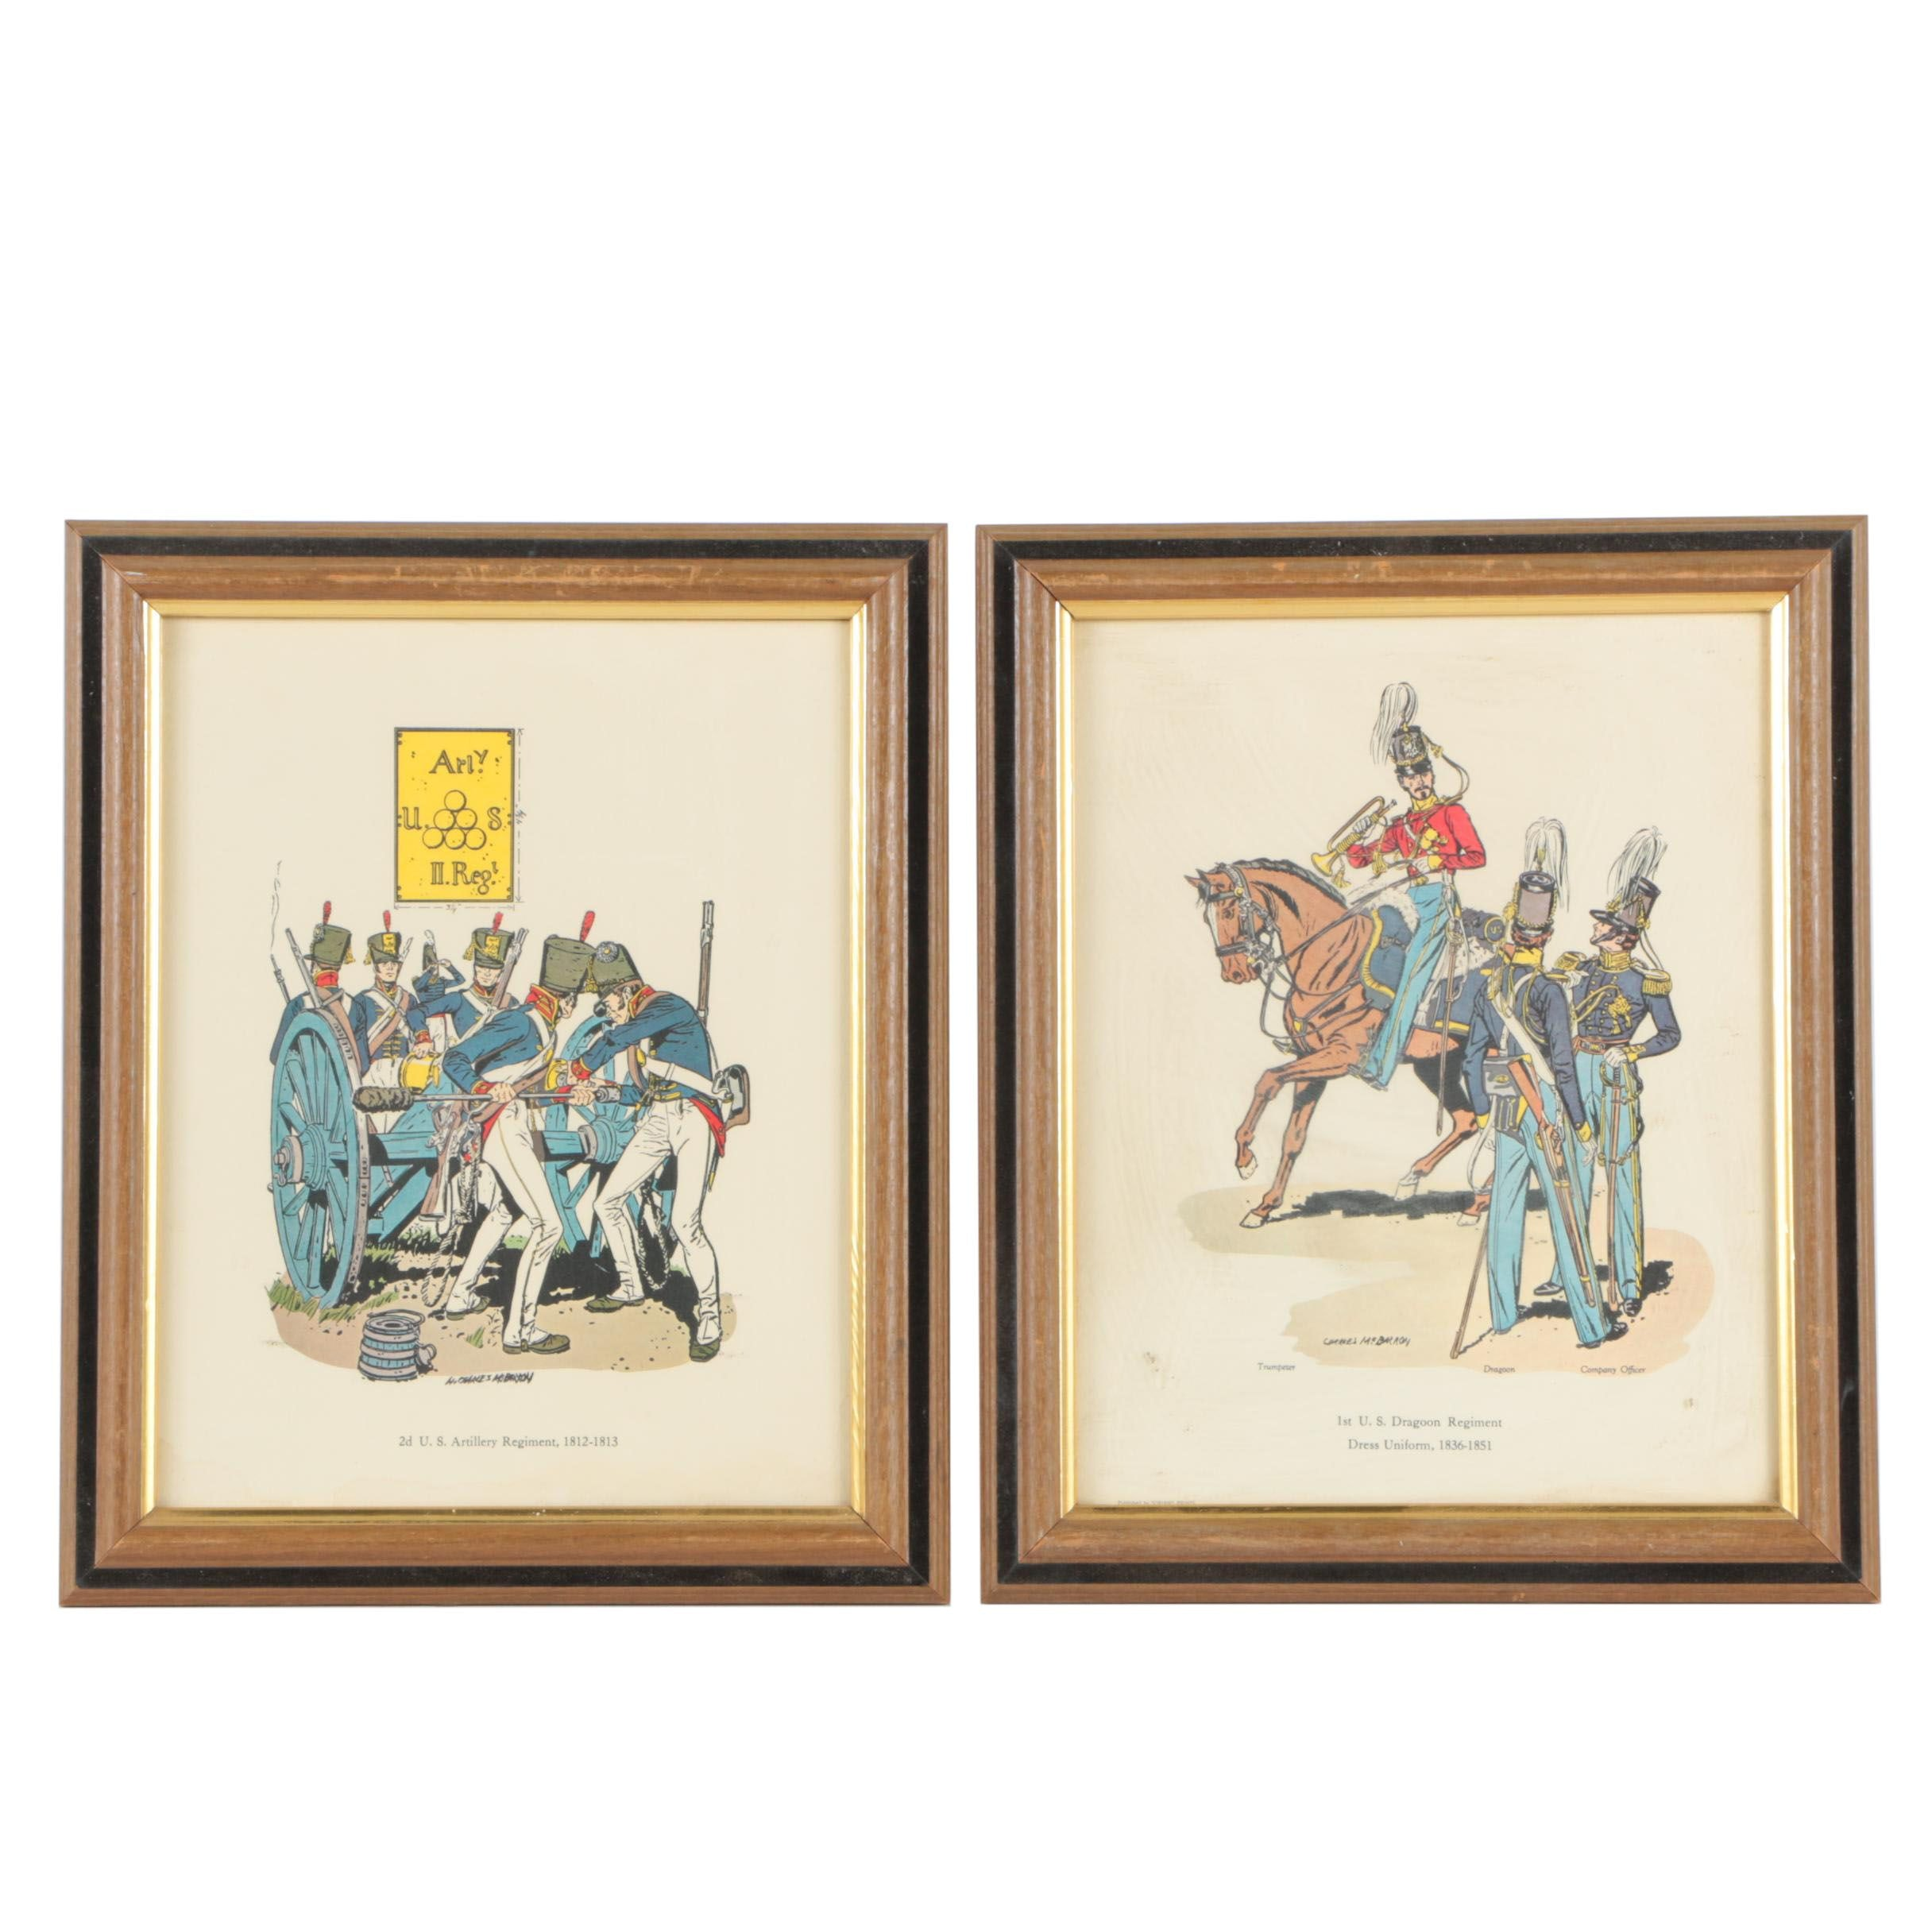 Pair of Offset Lithographs After Charles McBarron